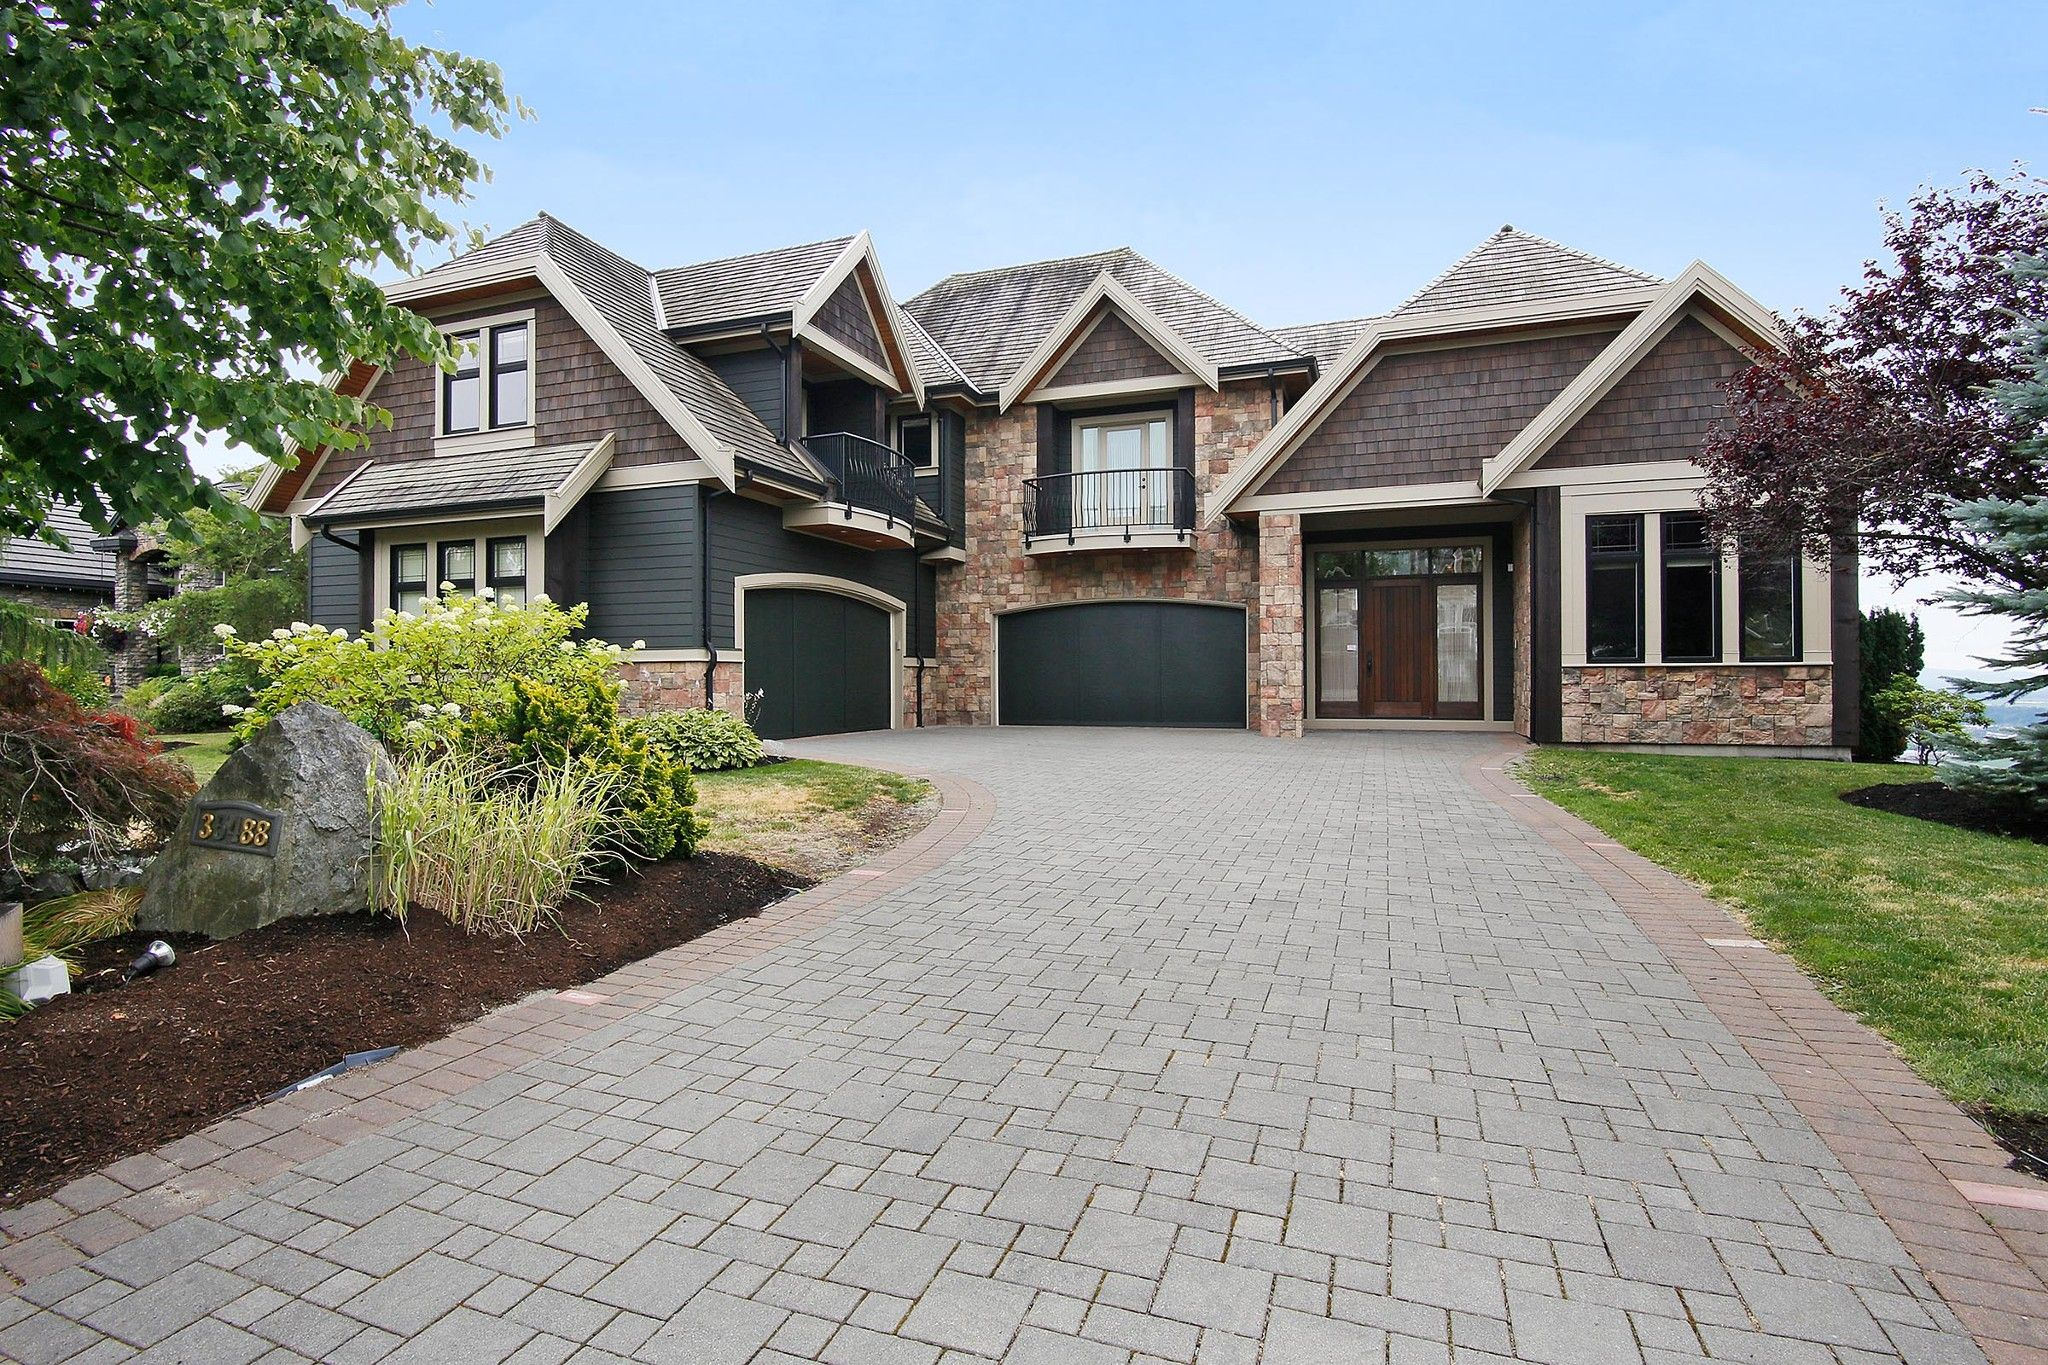 """Main Photo: 35488 JADE Drive in Abbotsford: Abbotsford East House for sale in """"Eagle Mountain"""" : MLS®# R2222601"""